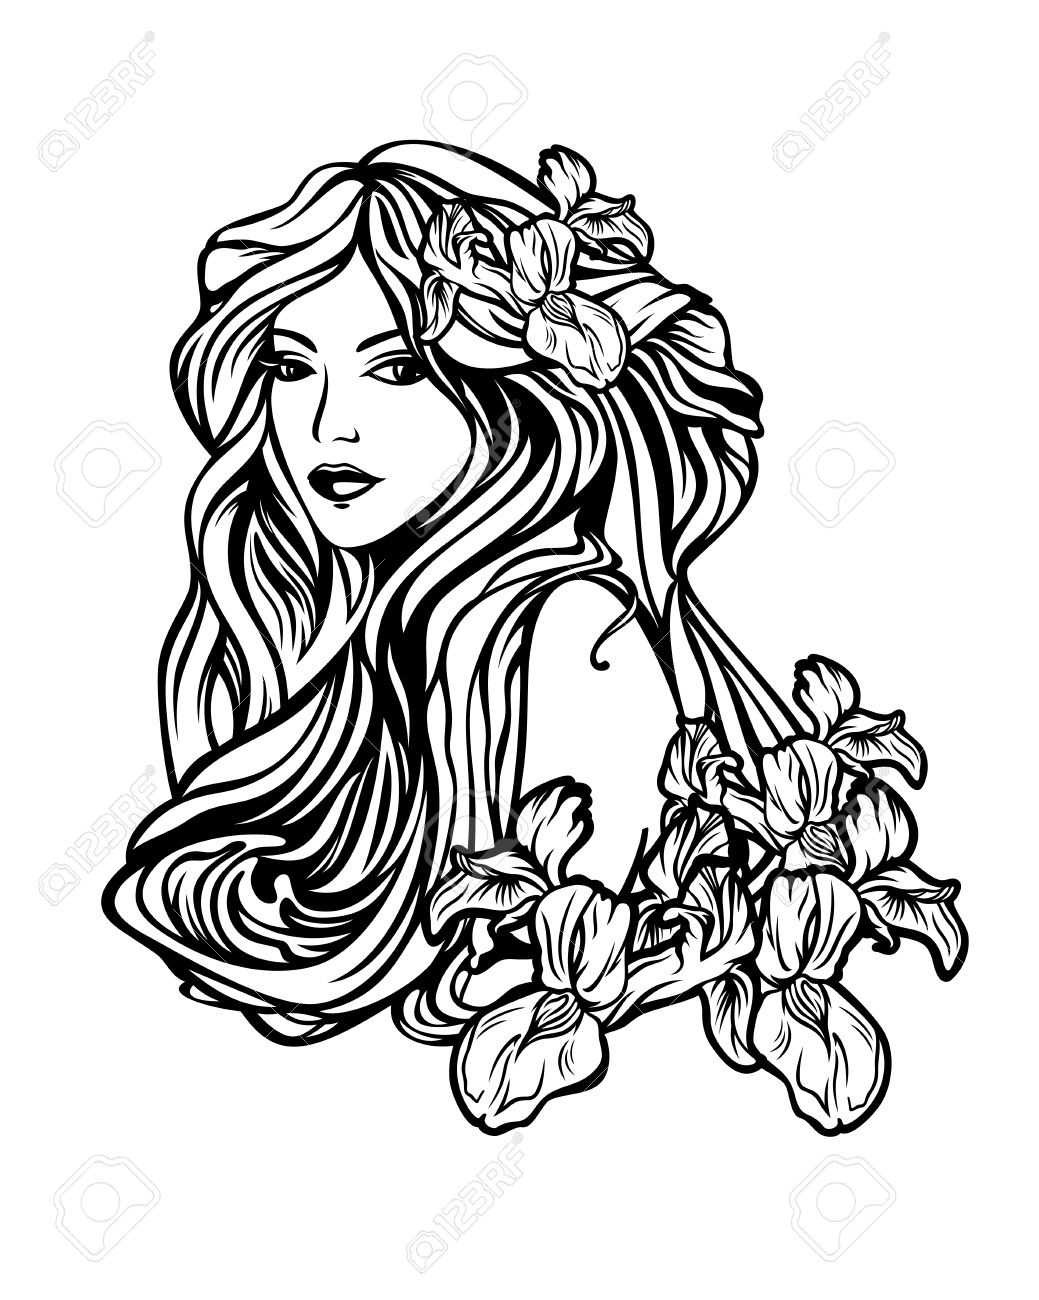 11390 art nouveau flower cliparts stock vector and royalty free beautiful woman with long hair among iris flowers art nouveau style vector illustration izmirmasajfo